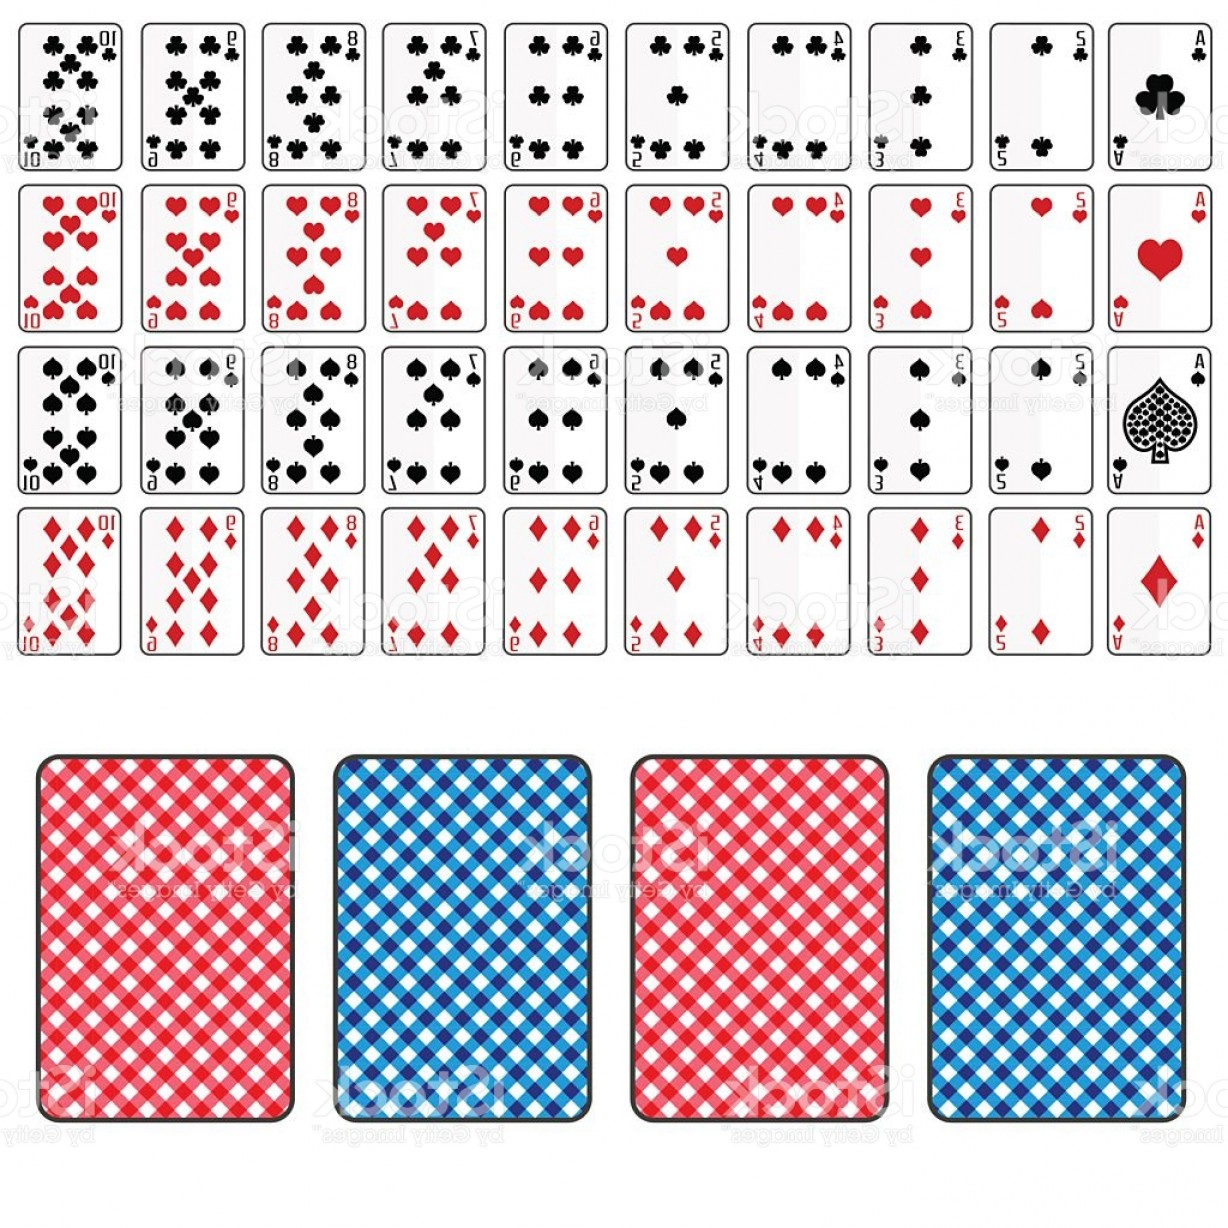 10 Playing Card Vector: Set Of Playing Cards From Ace To Ten Eps Gm